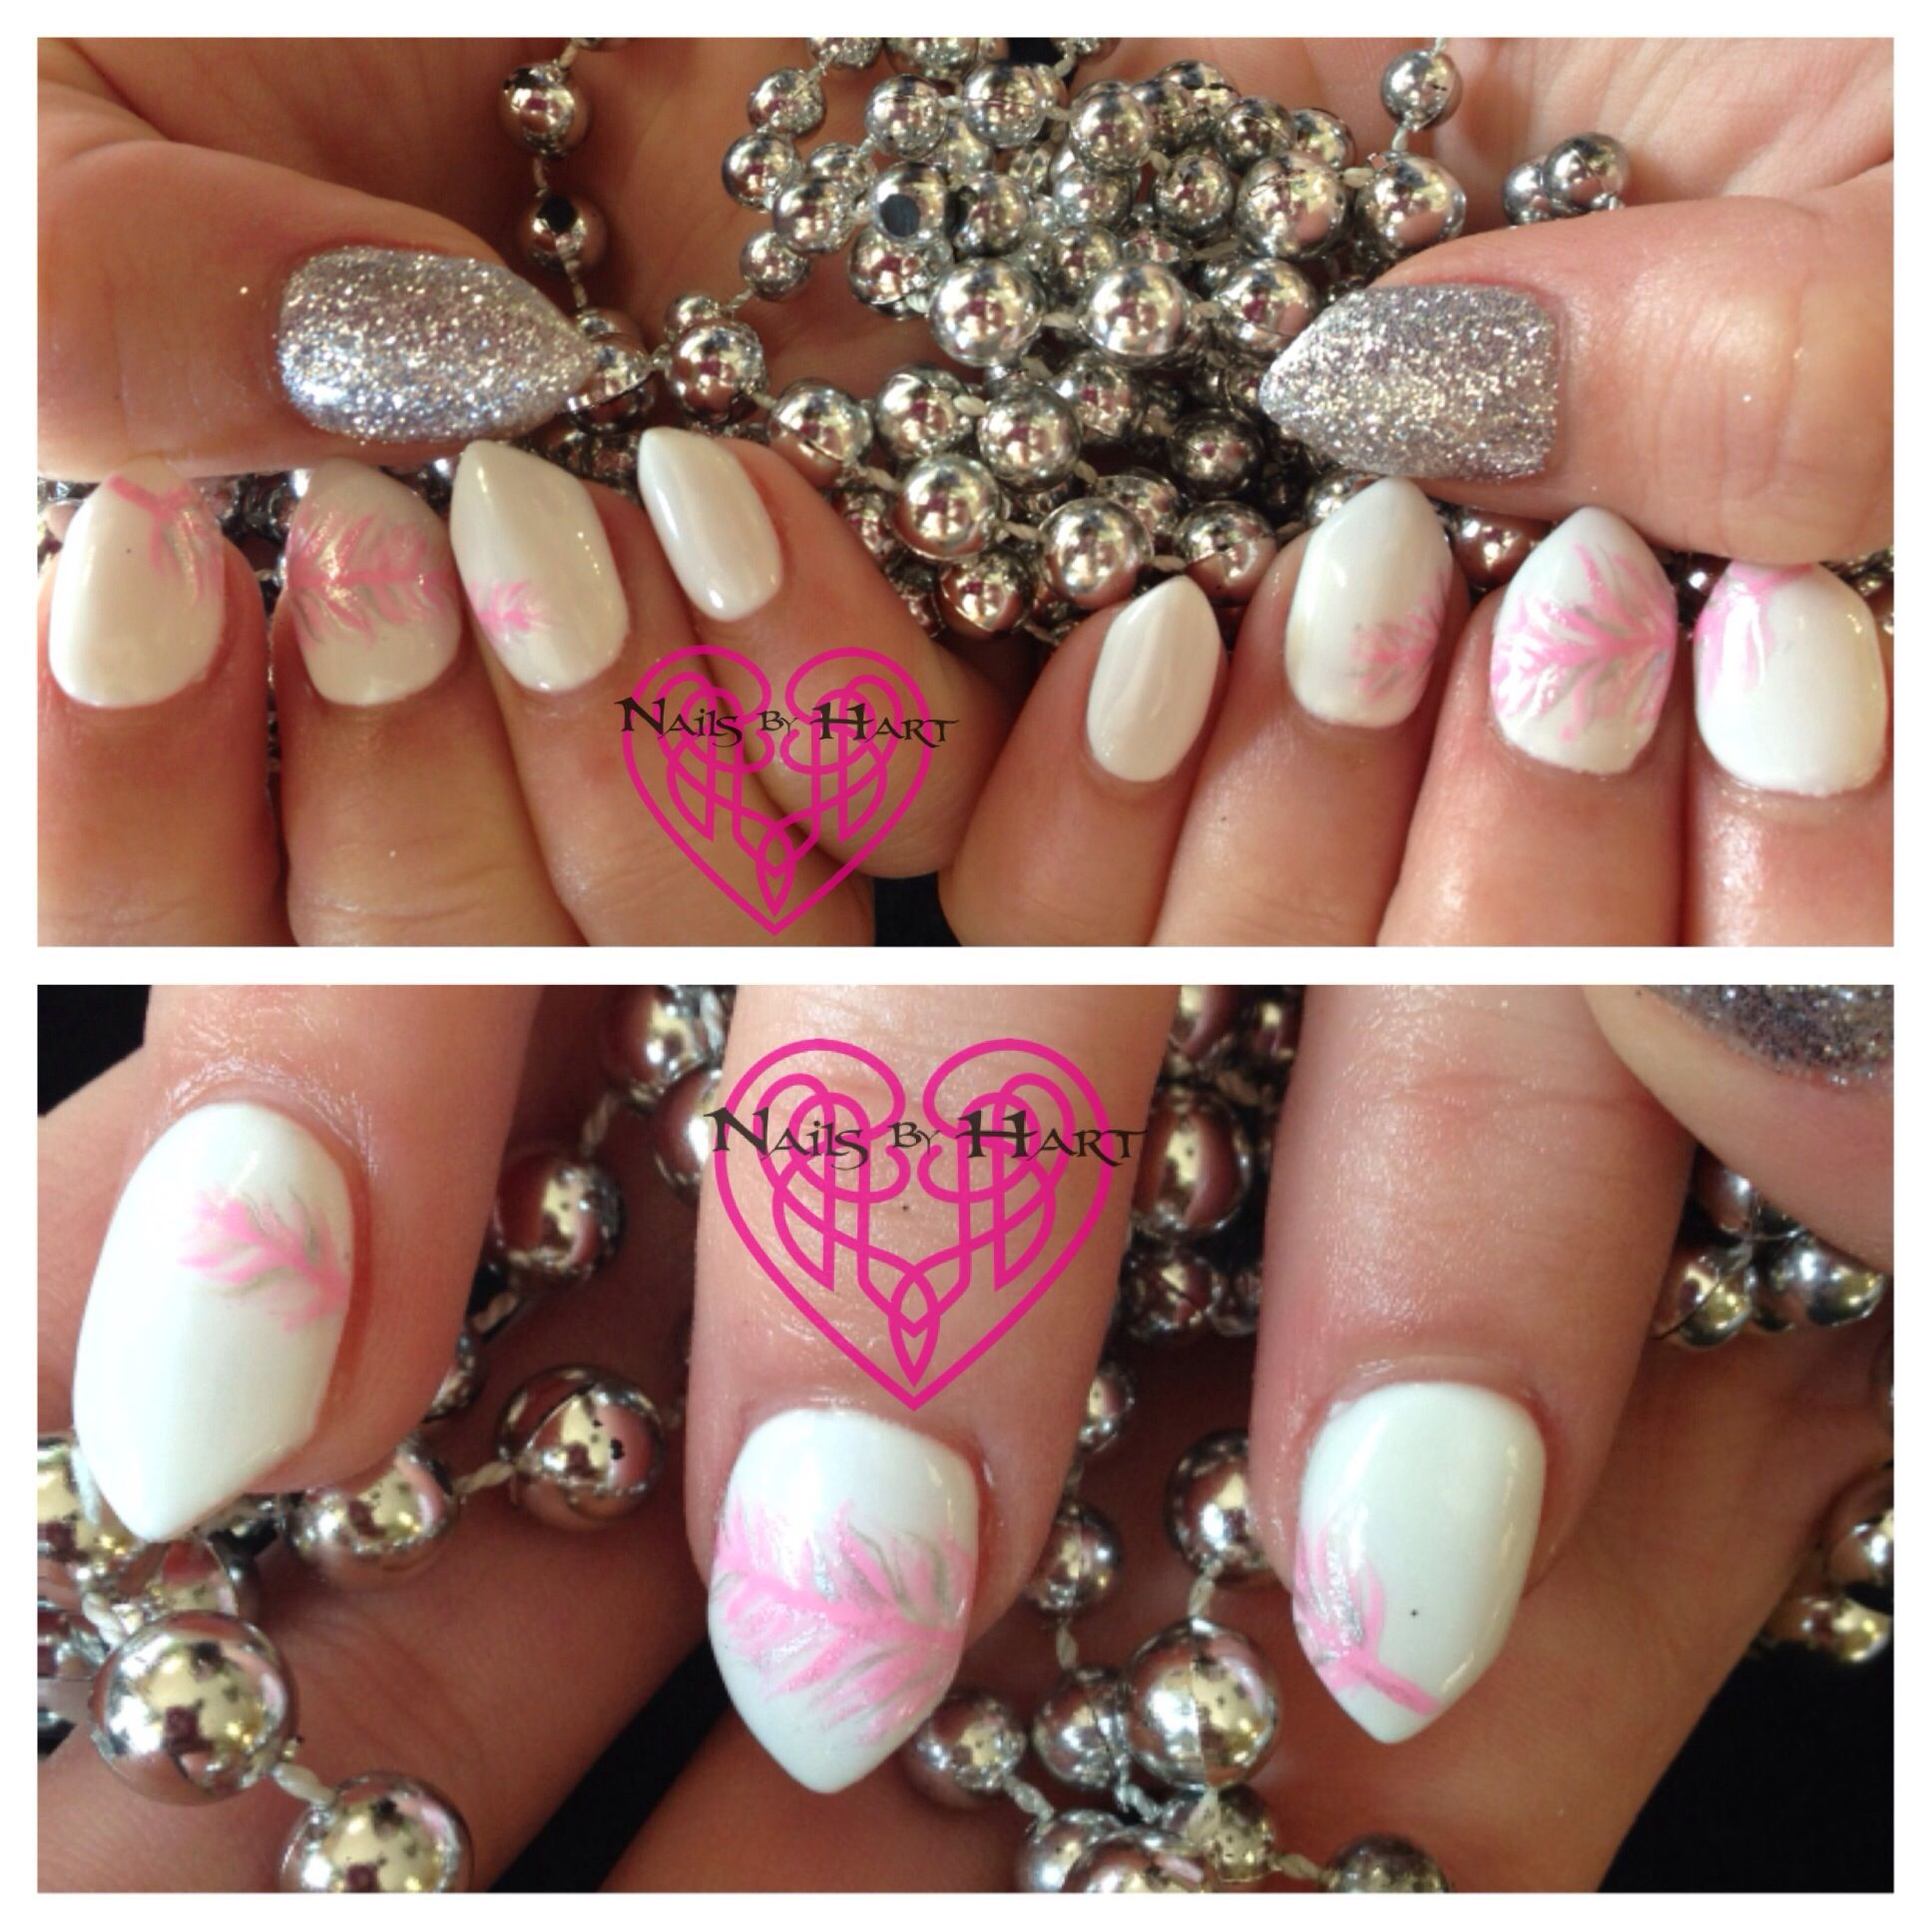 Nails by Katie hart Eugene, Or 541-730-2662 www.styleseat.com ...